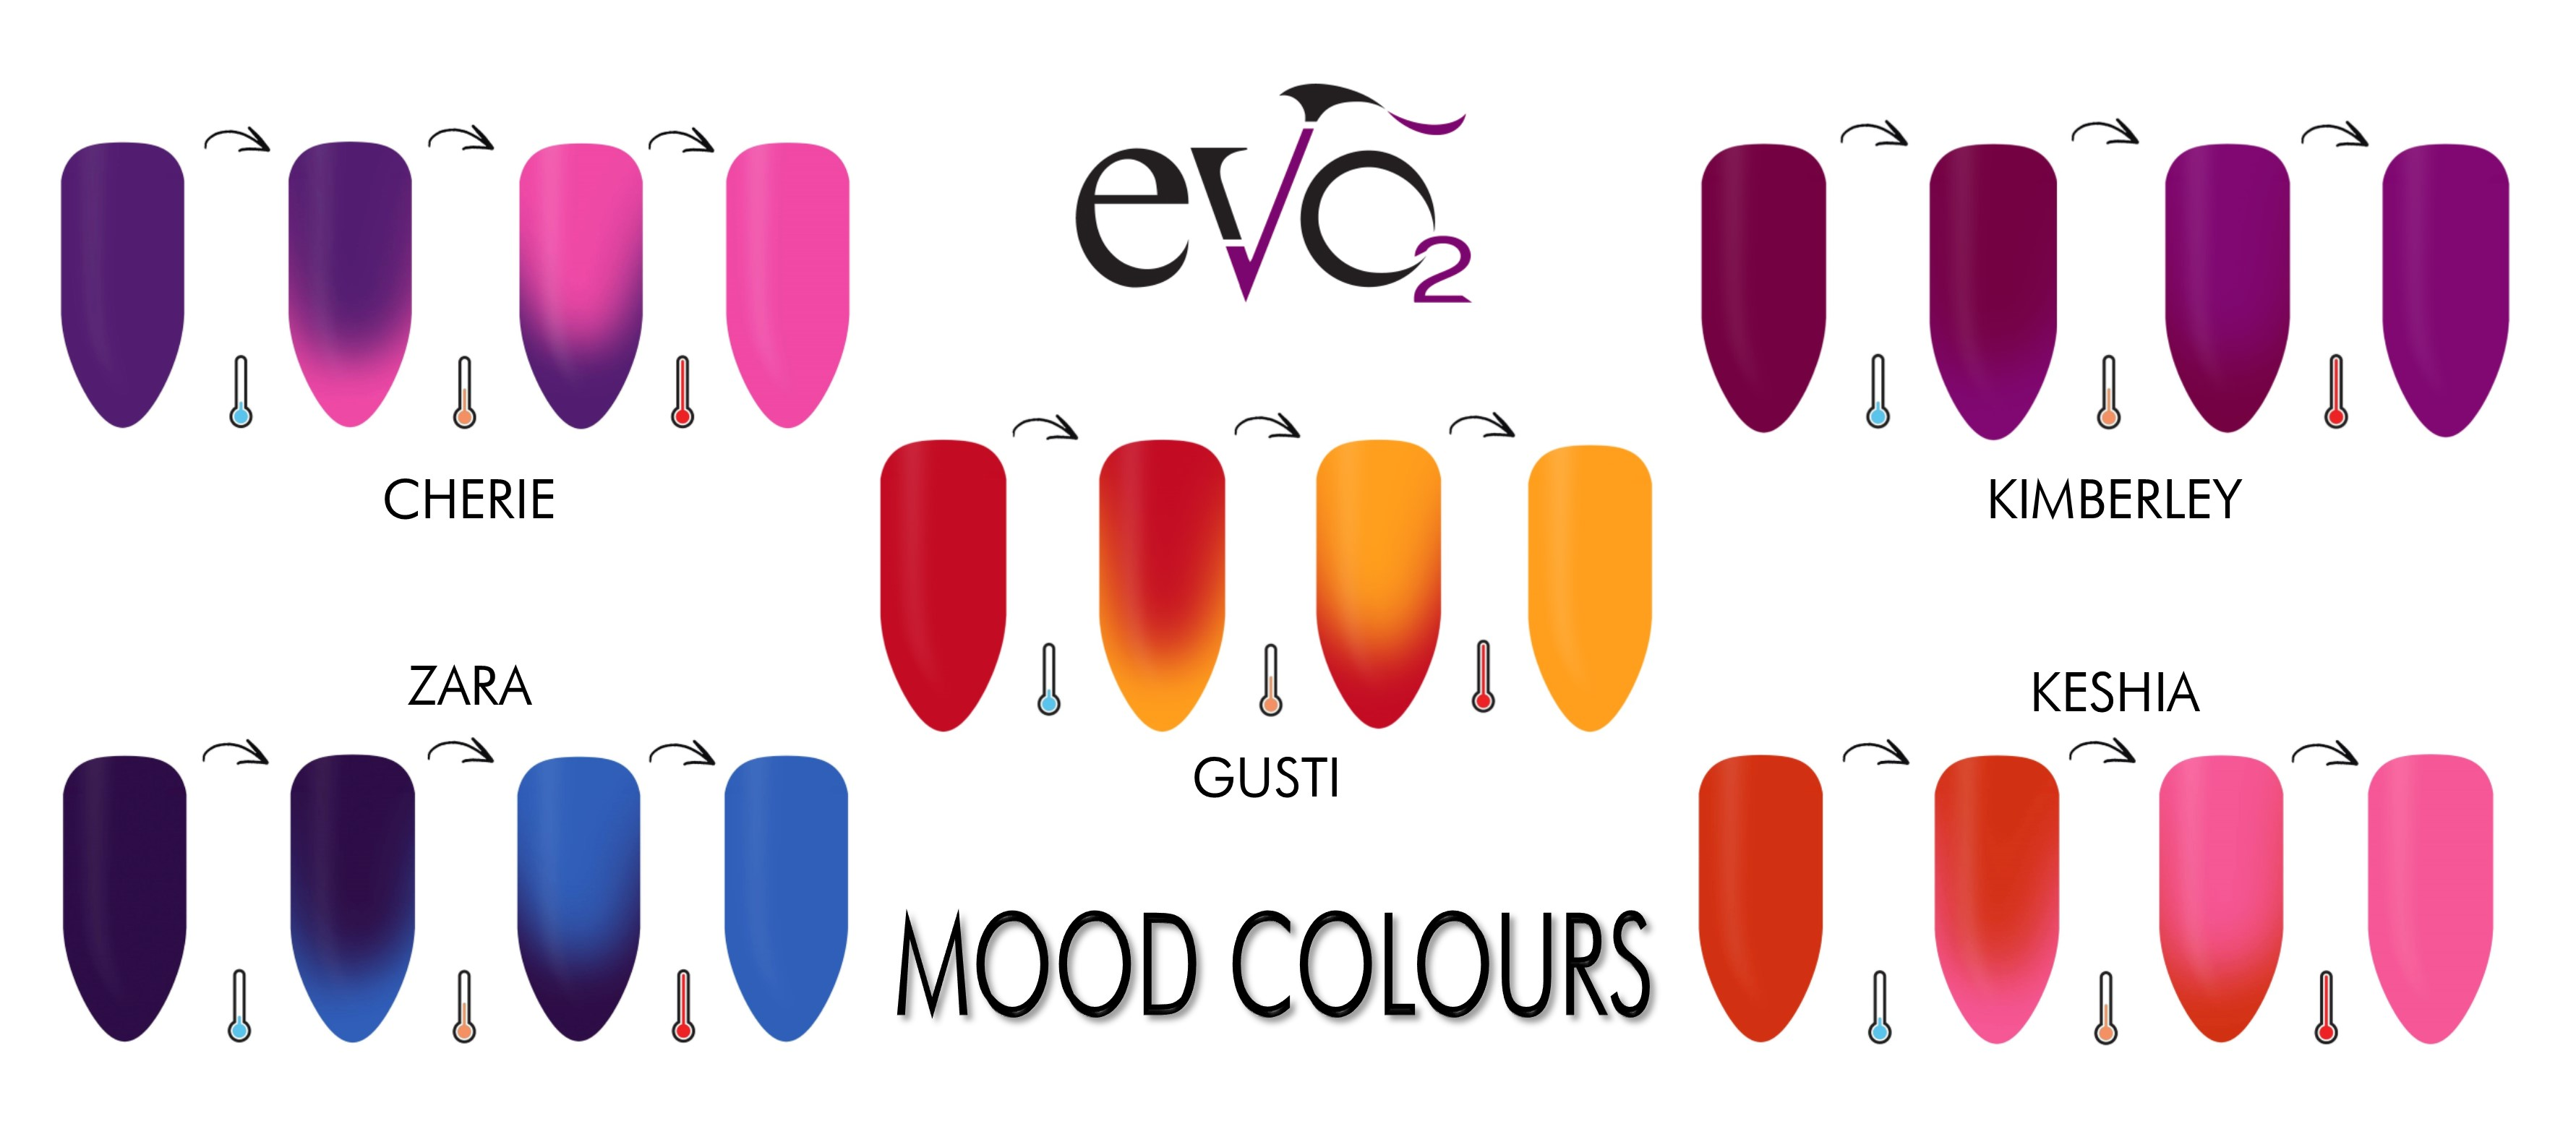 Evo-Mood-Colour-Transitions